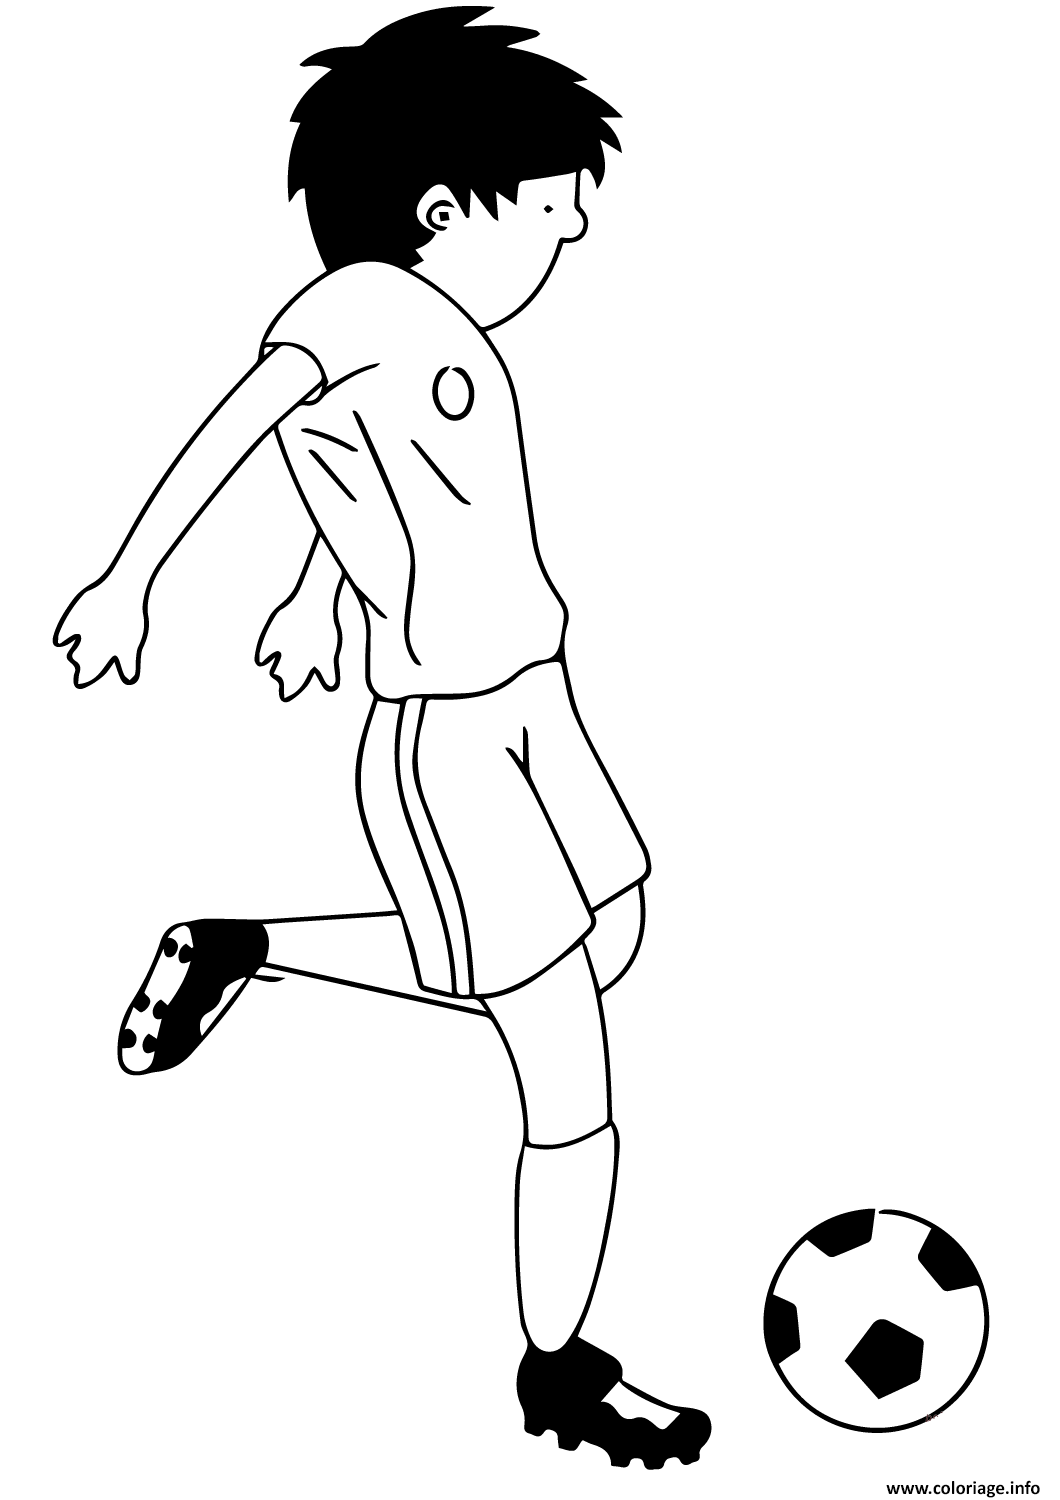 Coloriage Cartoon Joeur De Foot Frappe Le Ballon Dessin